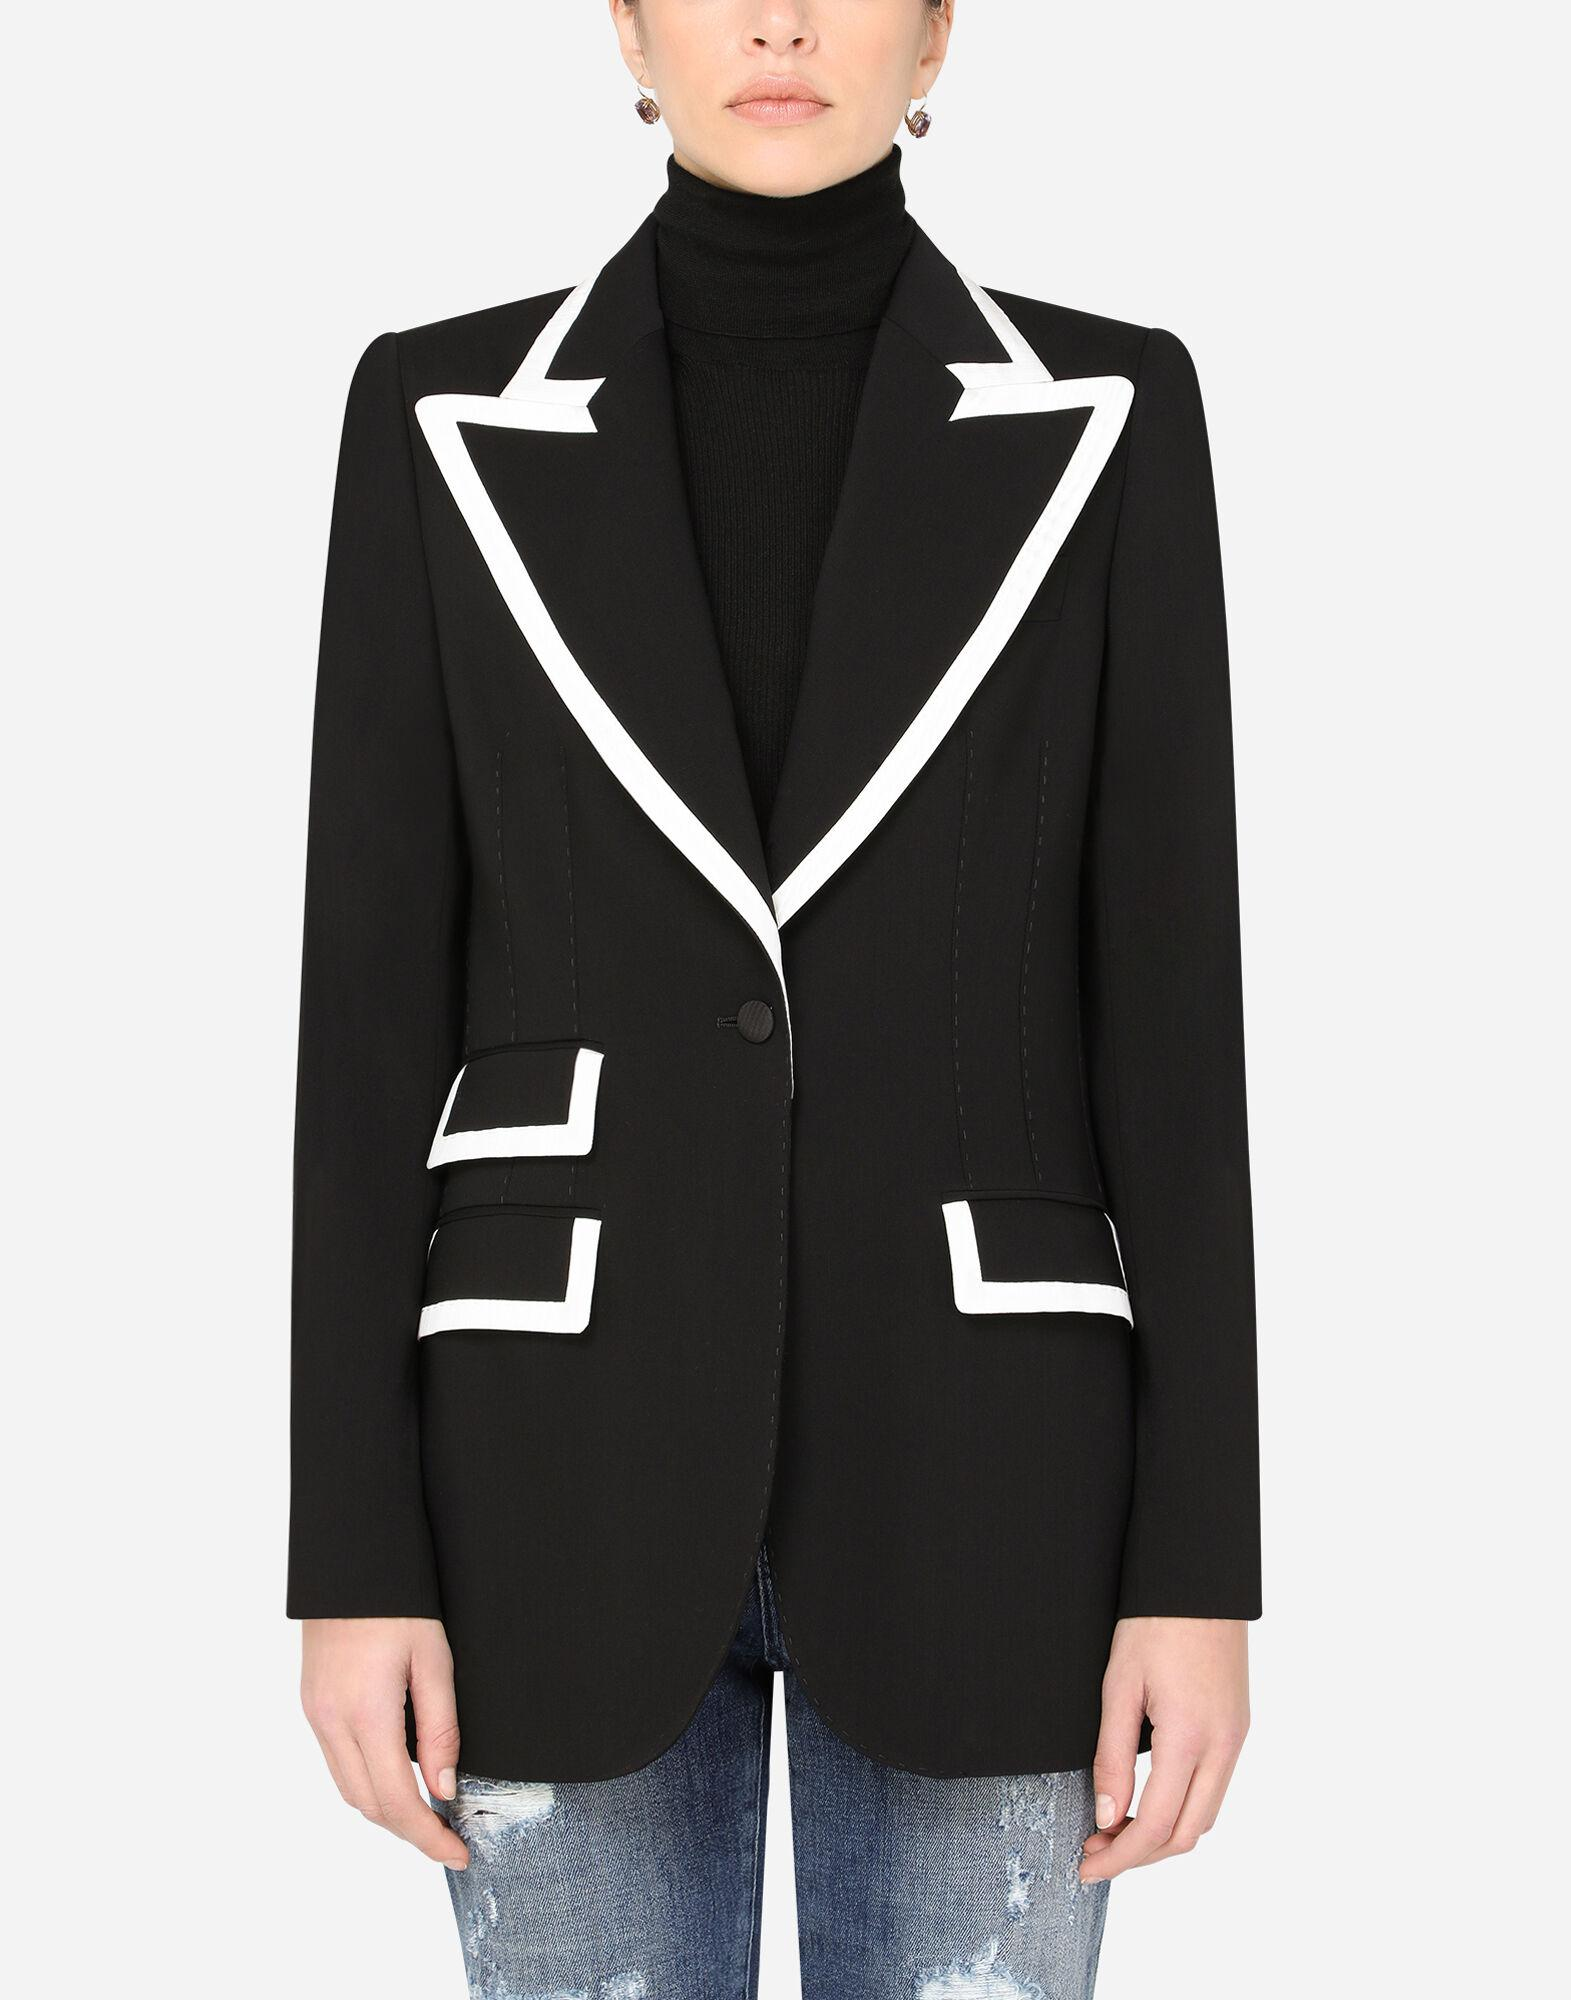 Woolen jacket with detailed edge